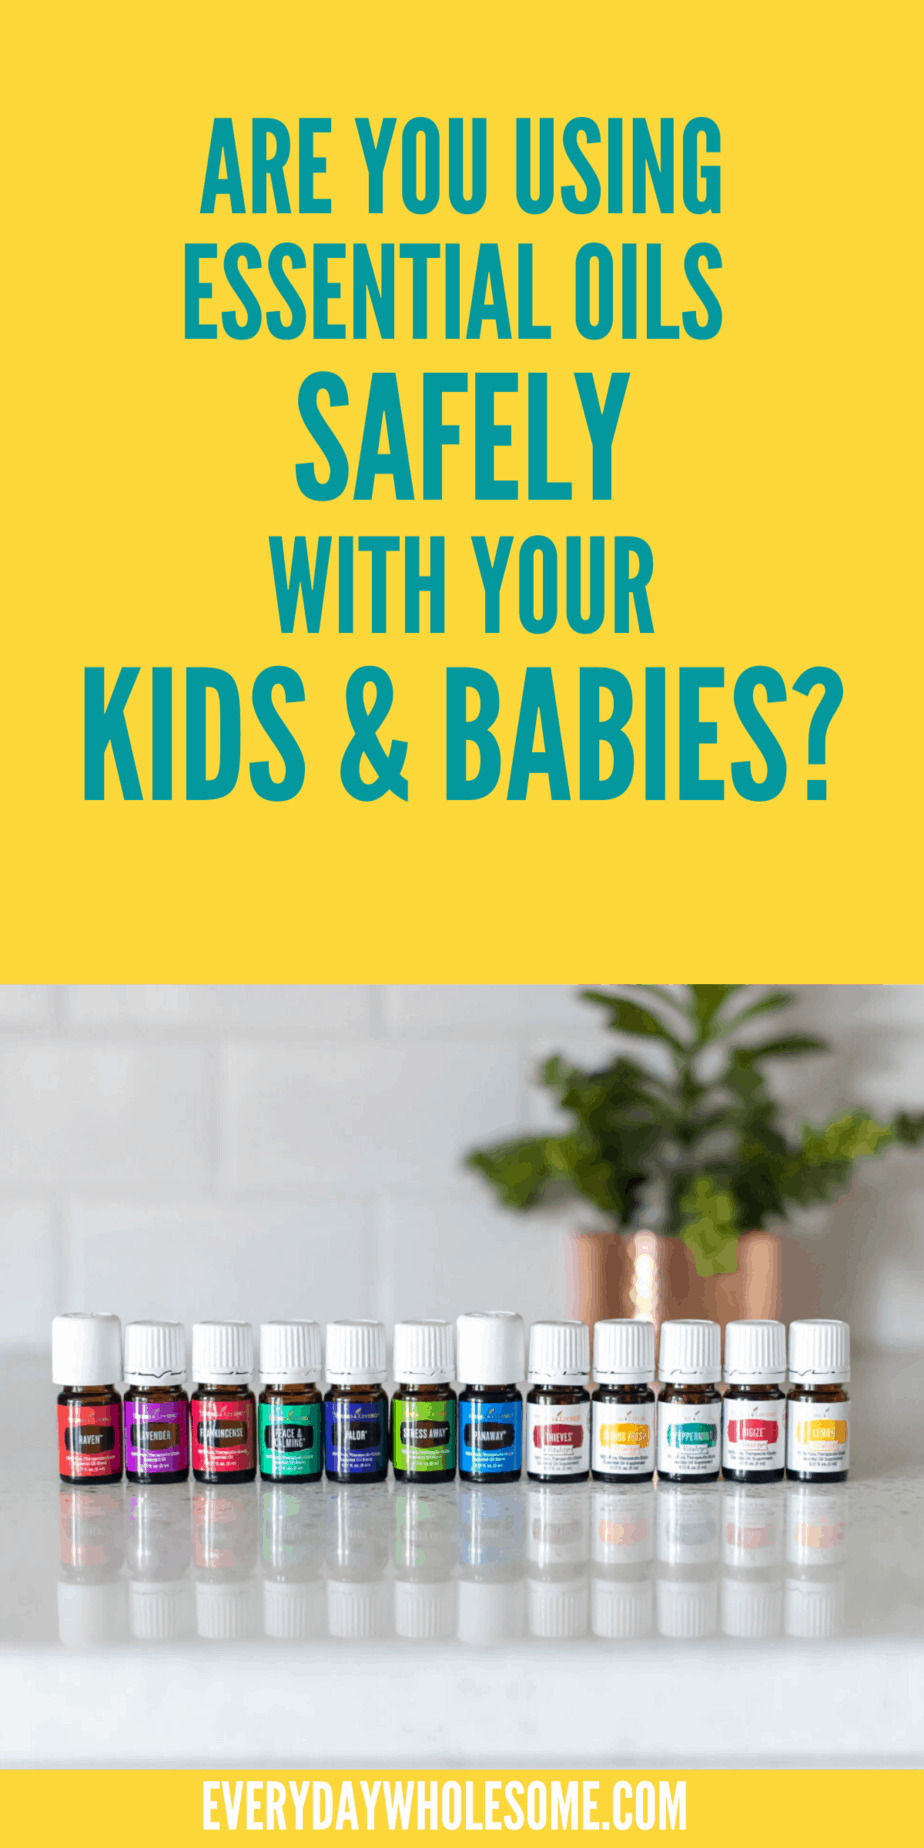 Essential oil safety for kids and babies